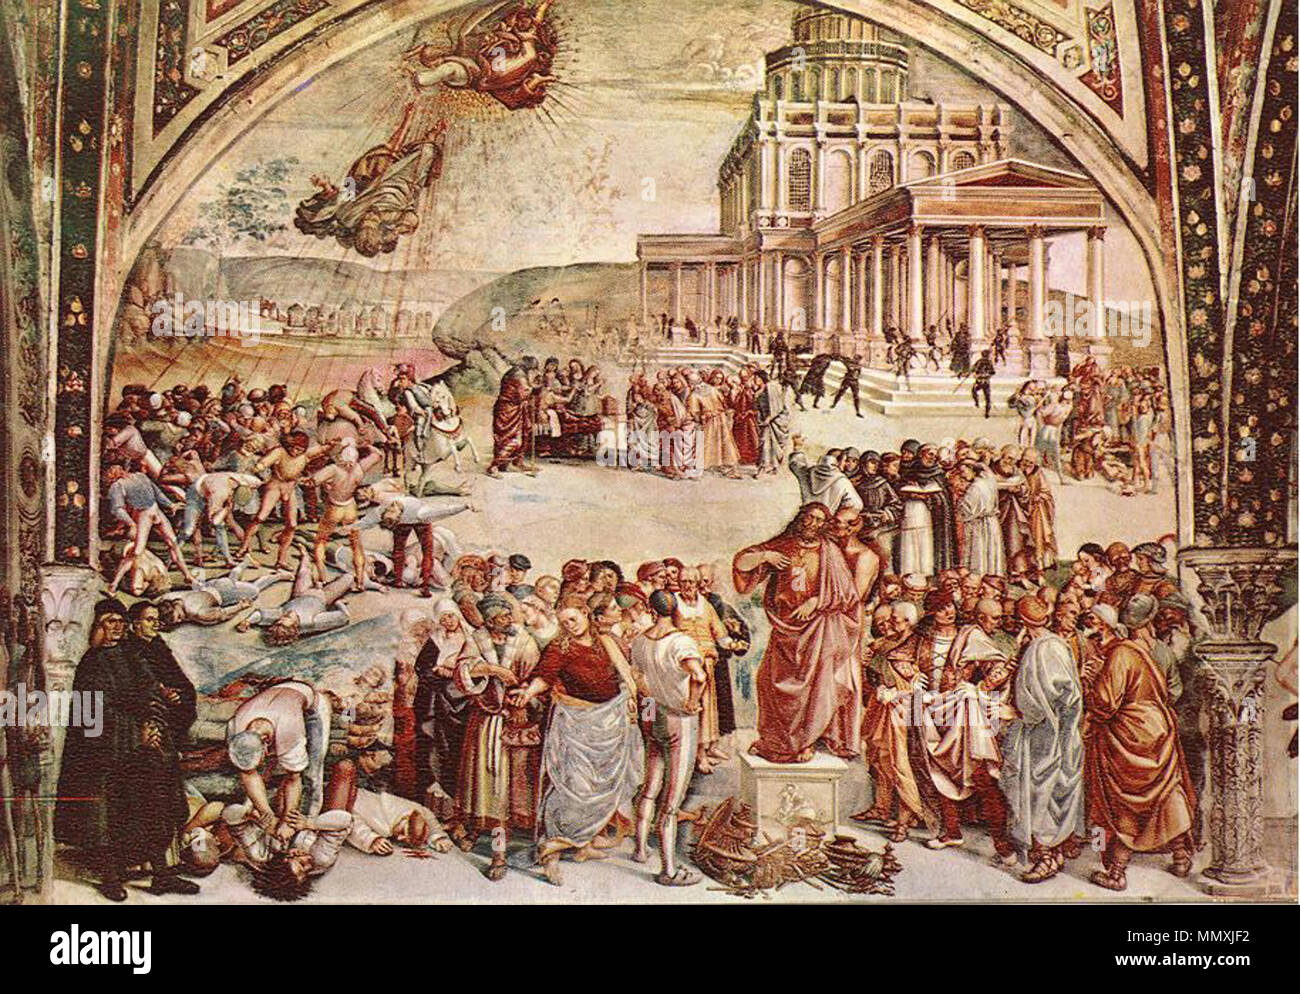 Sermon and Deeds of the Antichrist. between 1499 and 1502. Fra angelico  luca signorelli orvieto